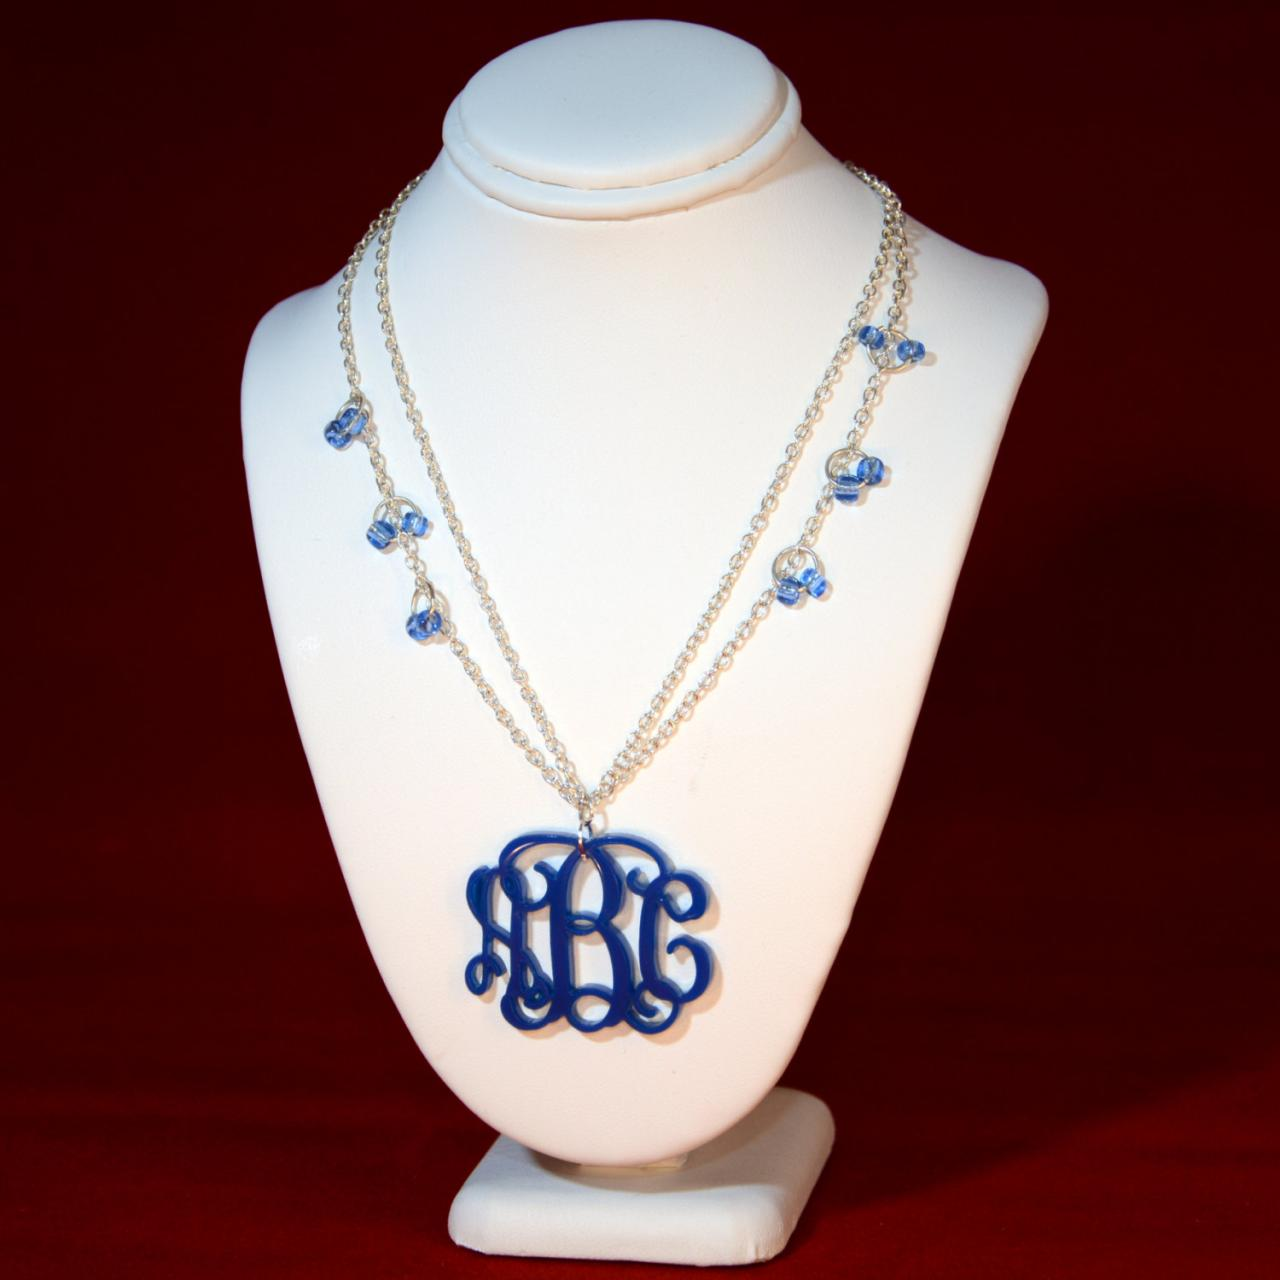 True Blue 3 Initials Monogram Necklace With Silver Chain and blue color bids - 1.5 inch Vine Personalized Monogram Acrylic Custom Lasercut